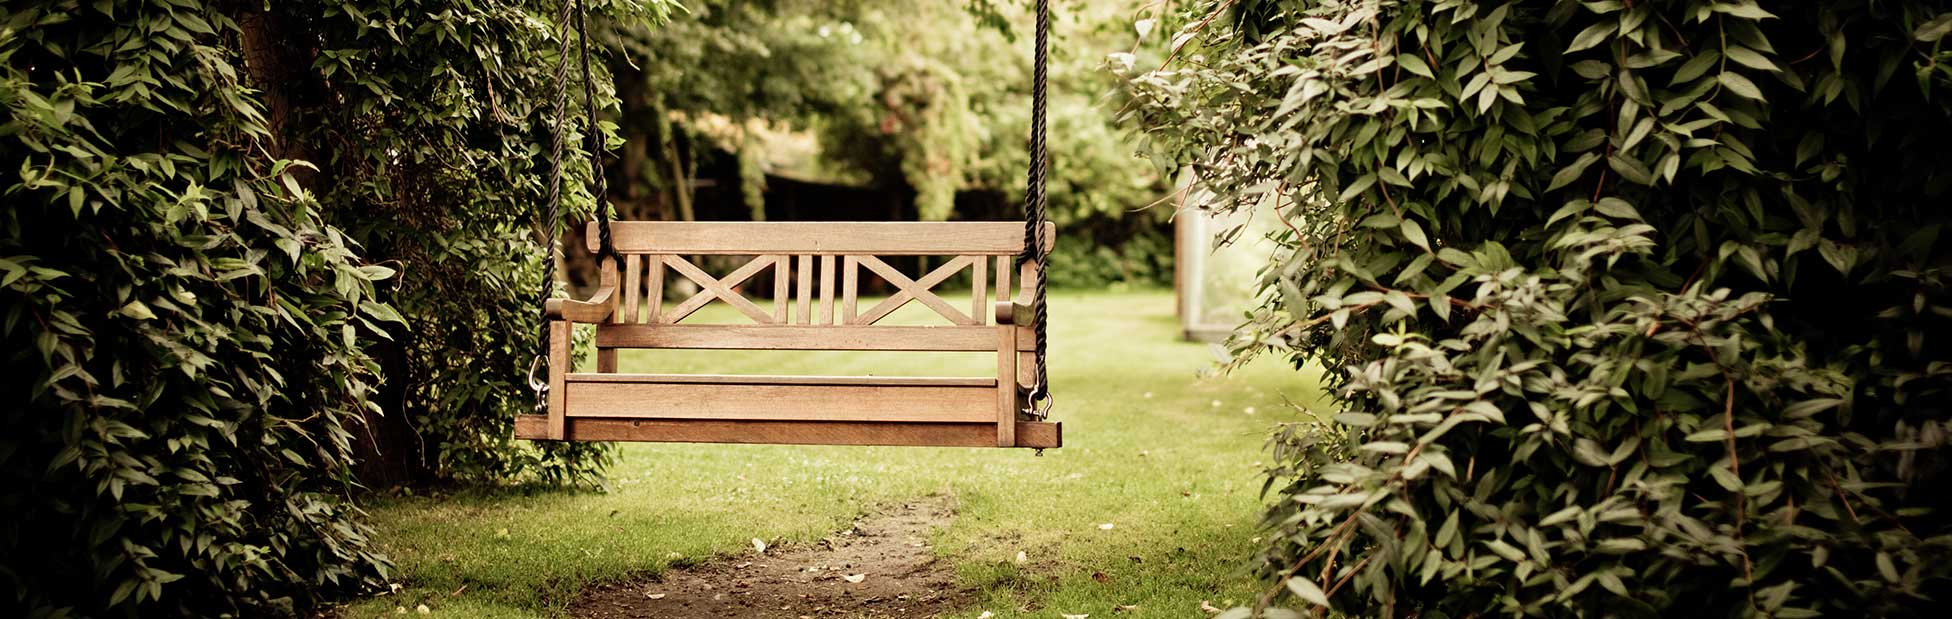 inviting wooden park bench in garden